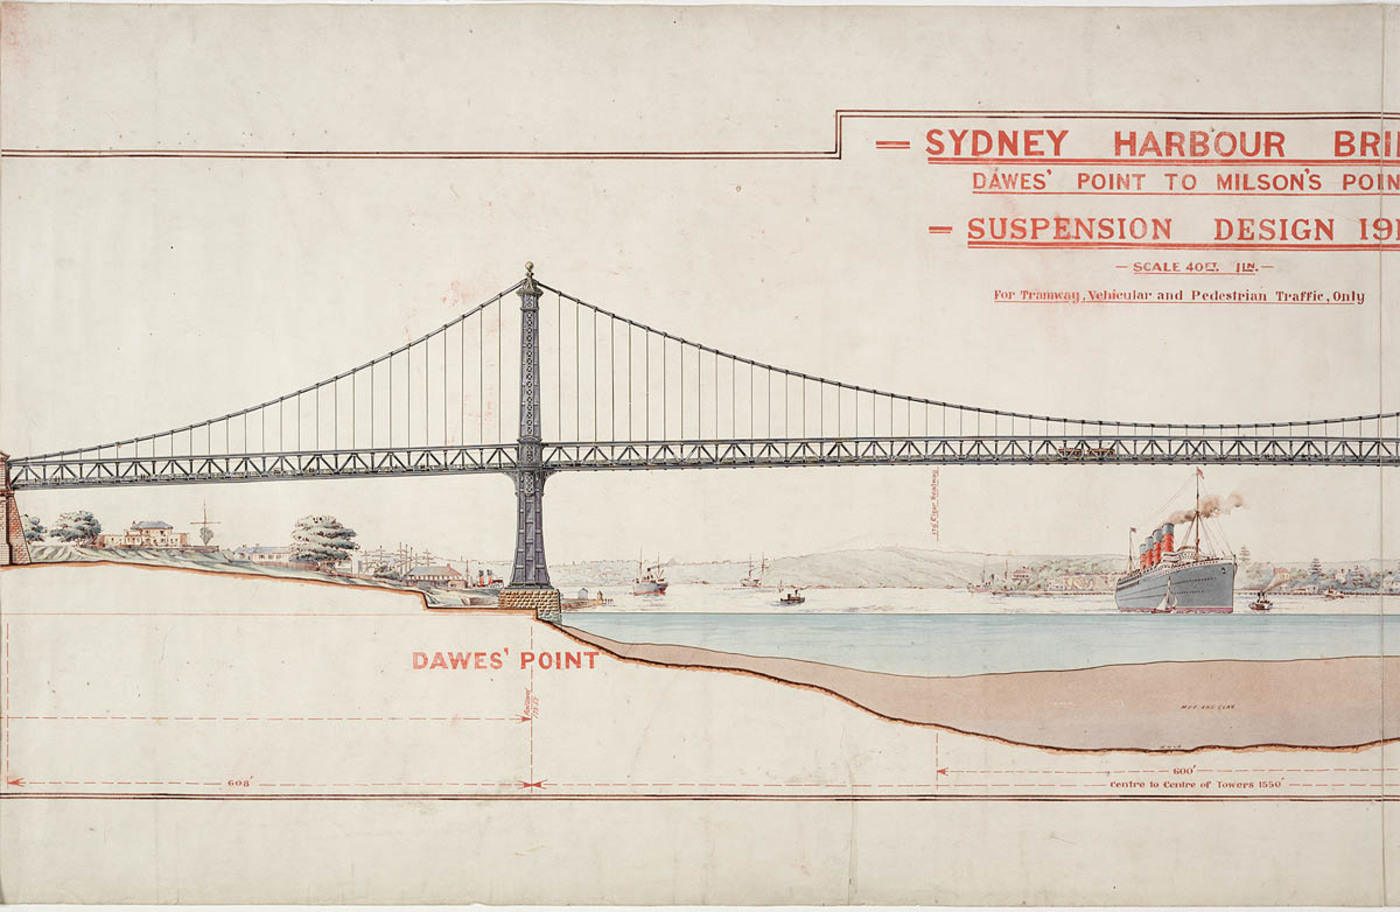 Colour plan of proposed bridge design for Dawes' Point to Milson's Point.